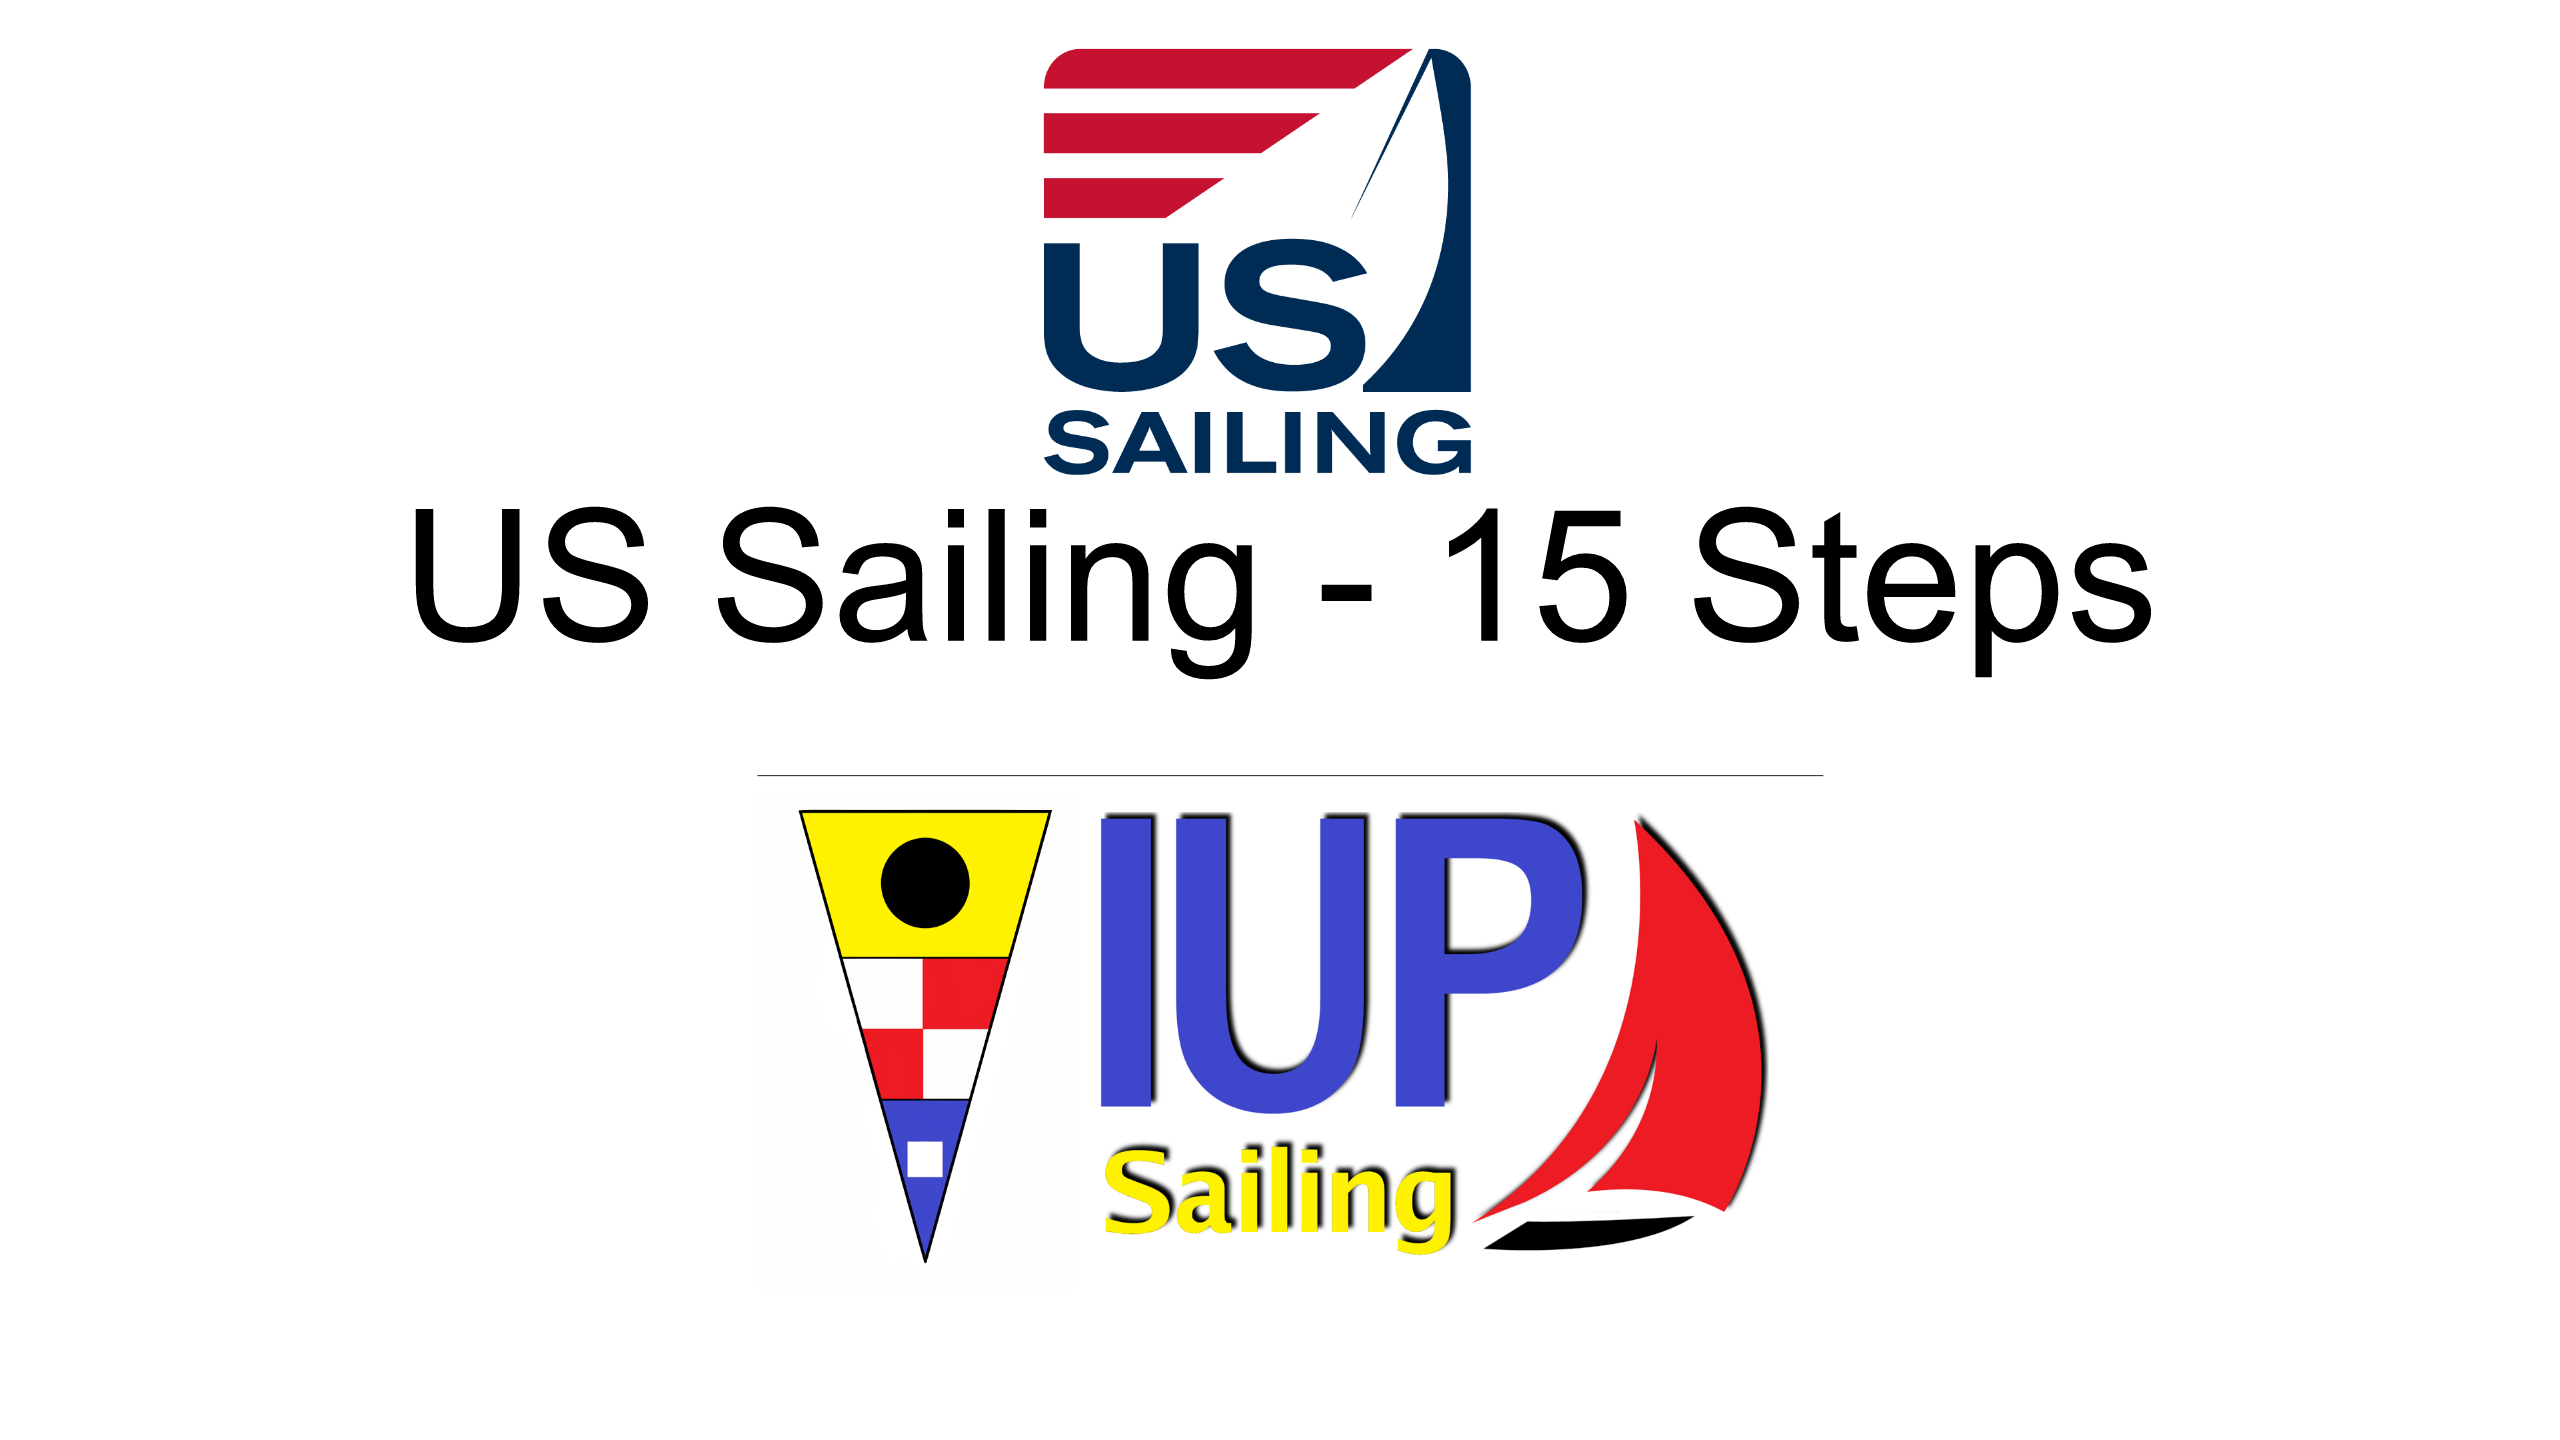 US Sailing Certification - 15 Skills